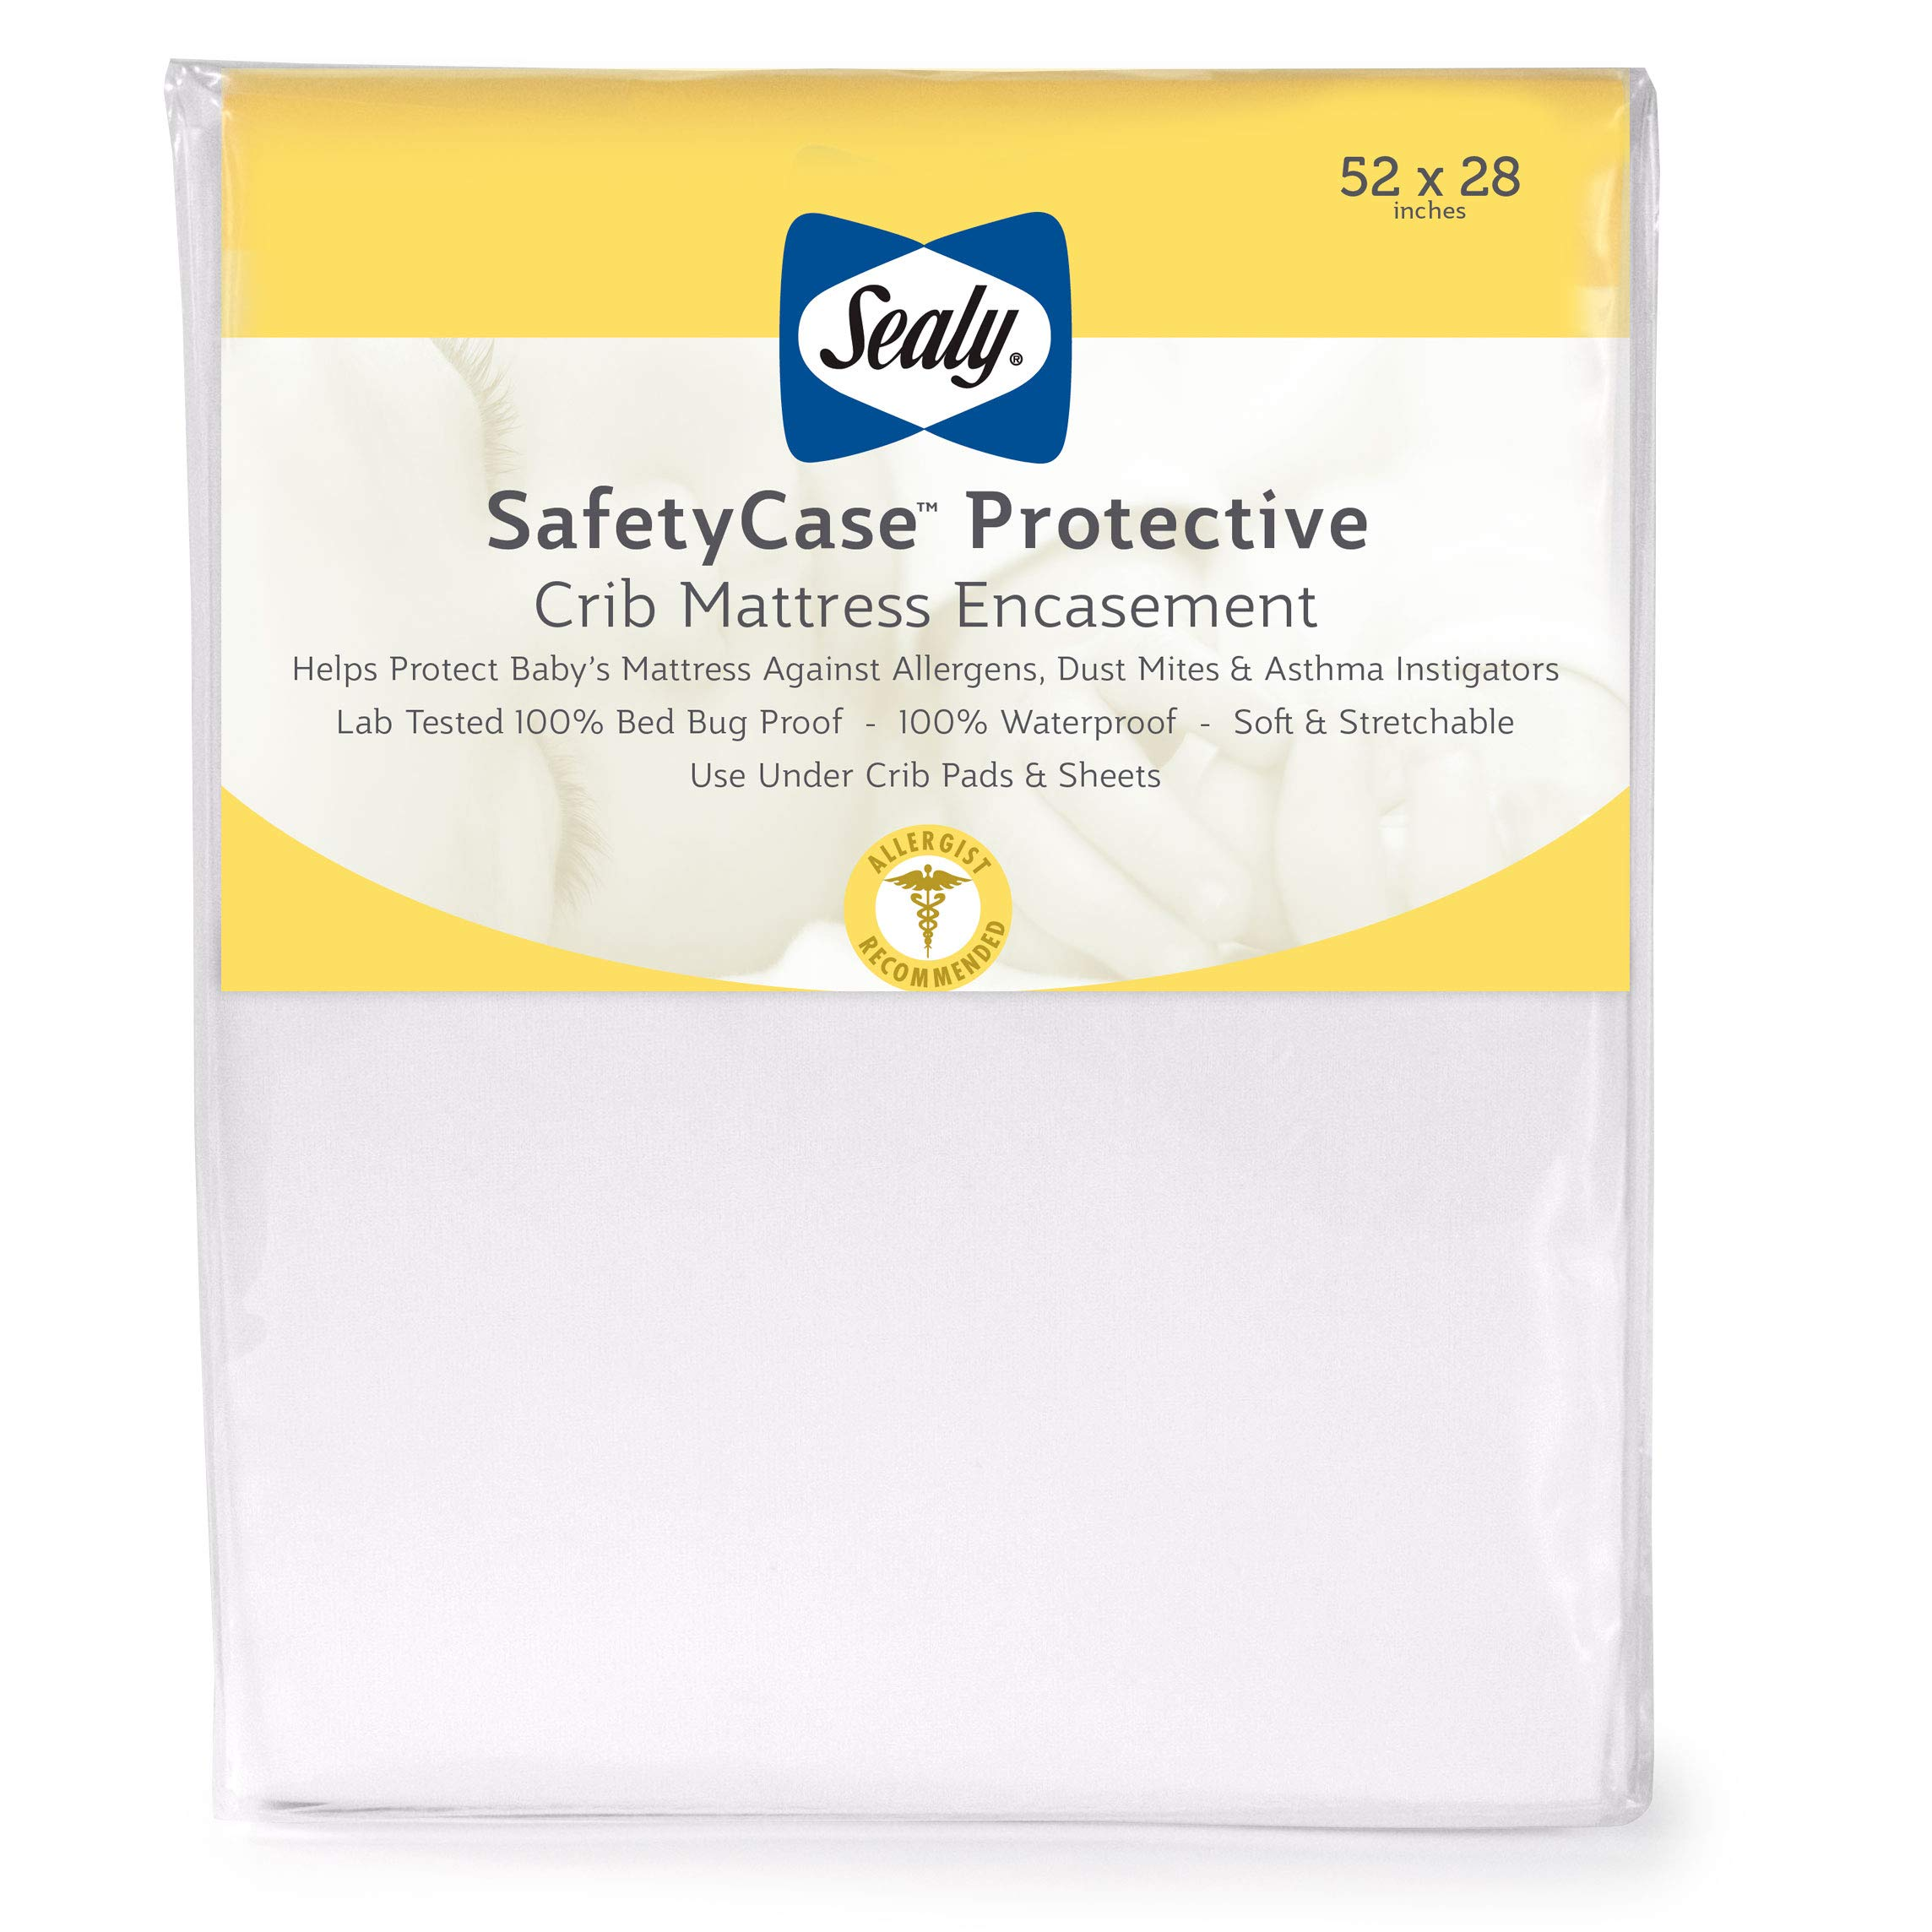 Sealy SafetyCase Protective Waterproof Zippered Toddler and Baby Crib Mattress Encasement - 100% Bed Bug Proof, White, 52'' x 28'' by Sealy